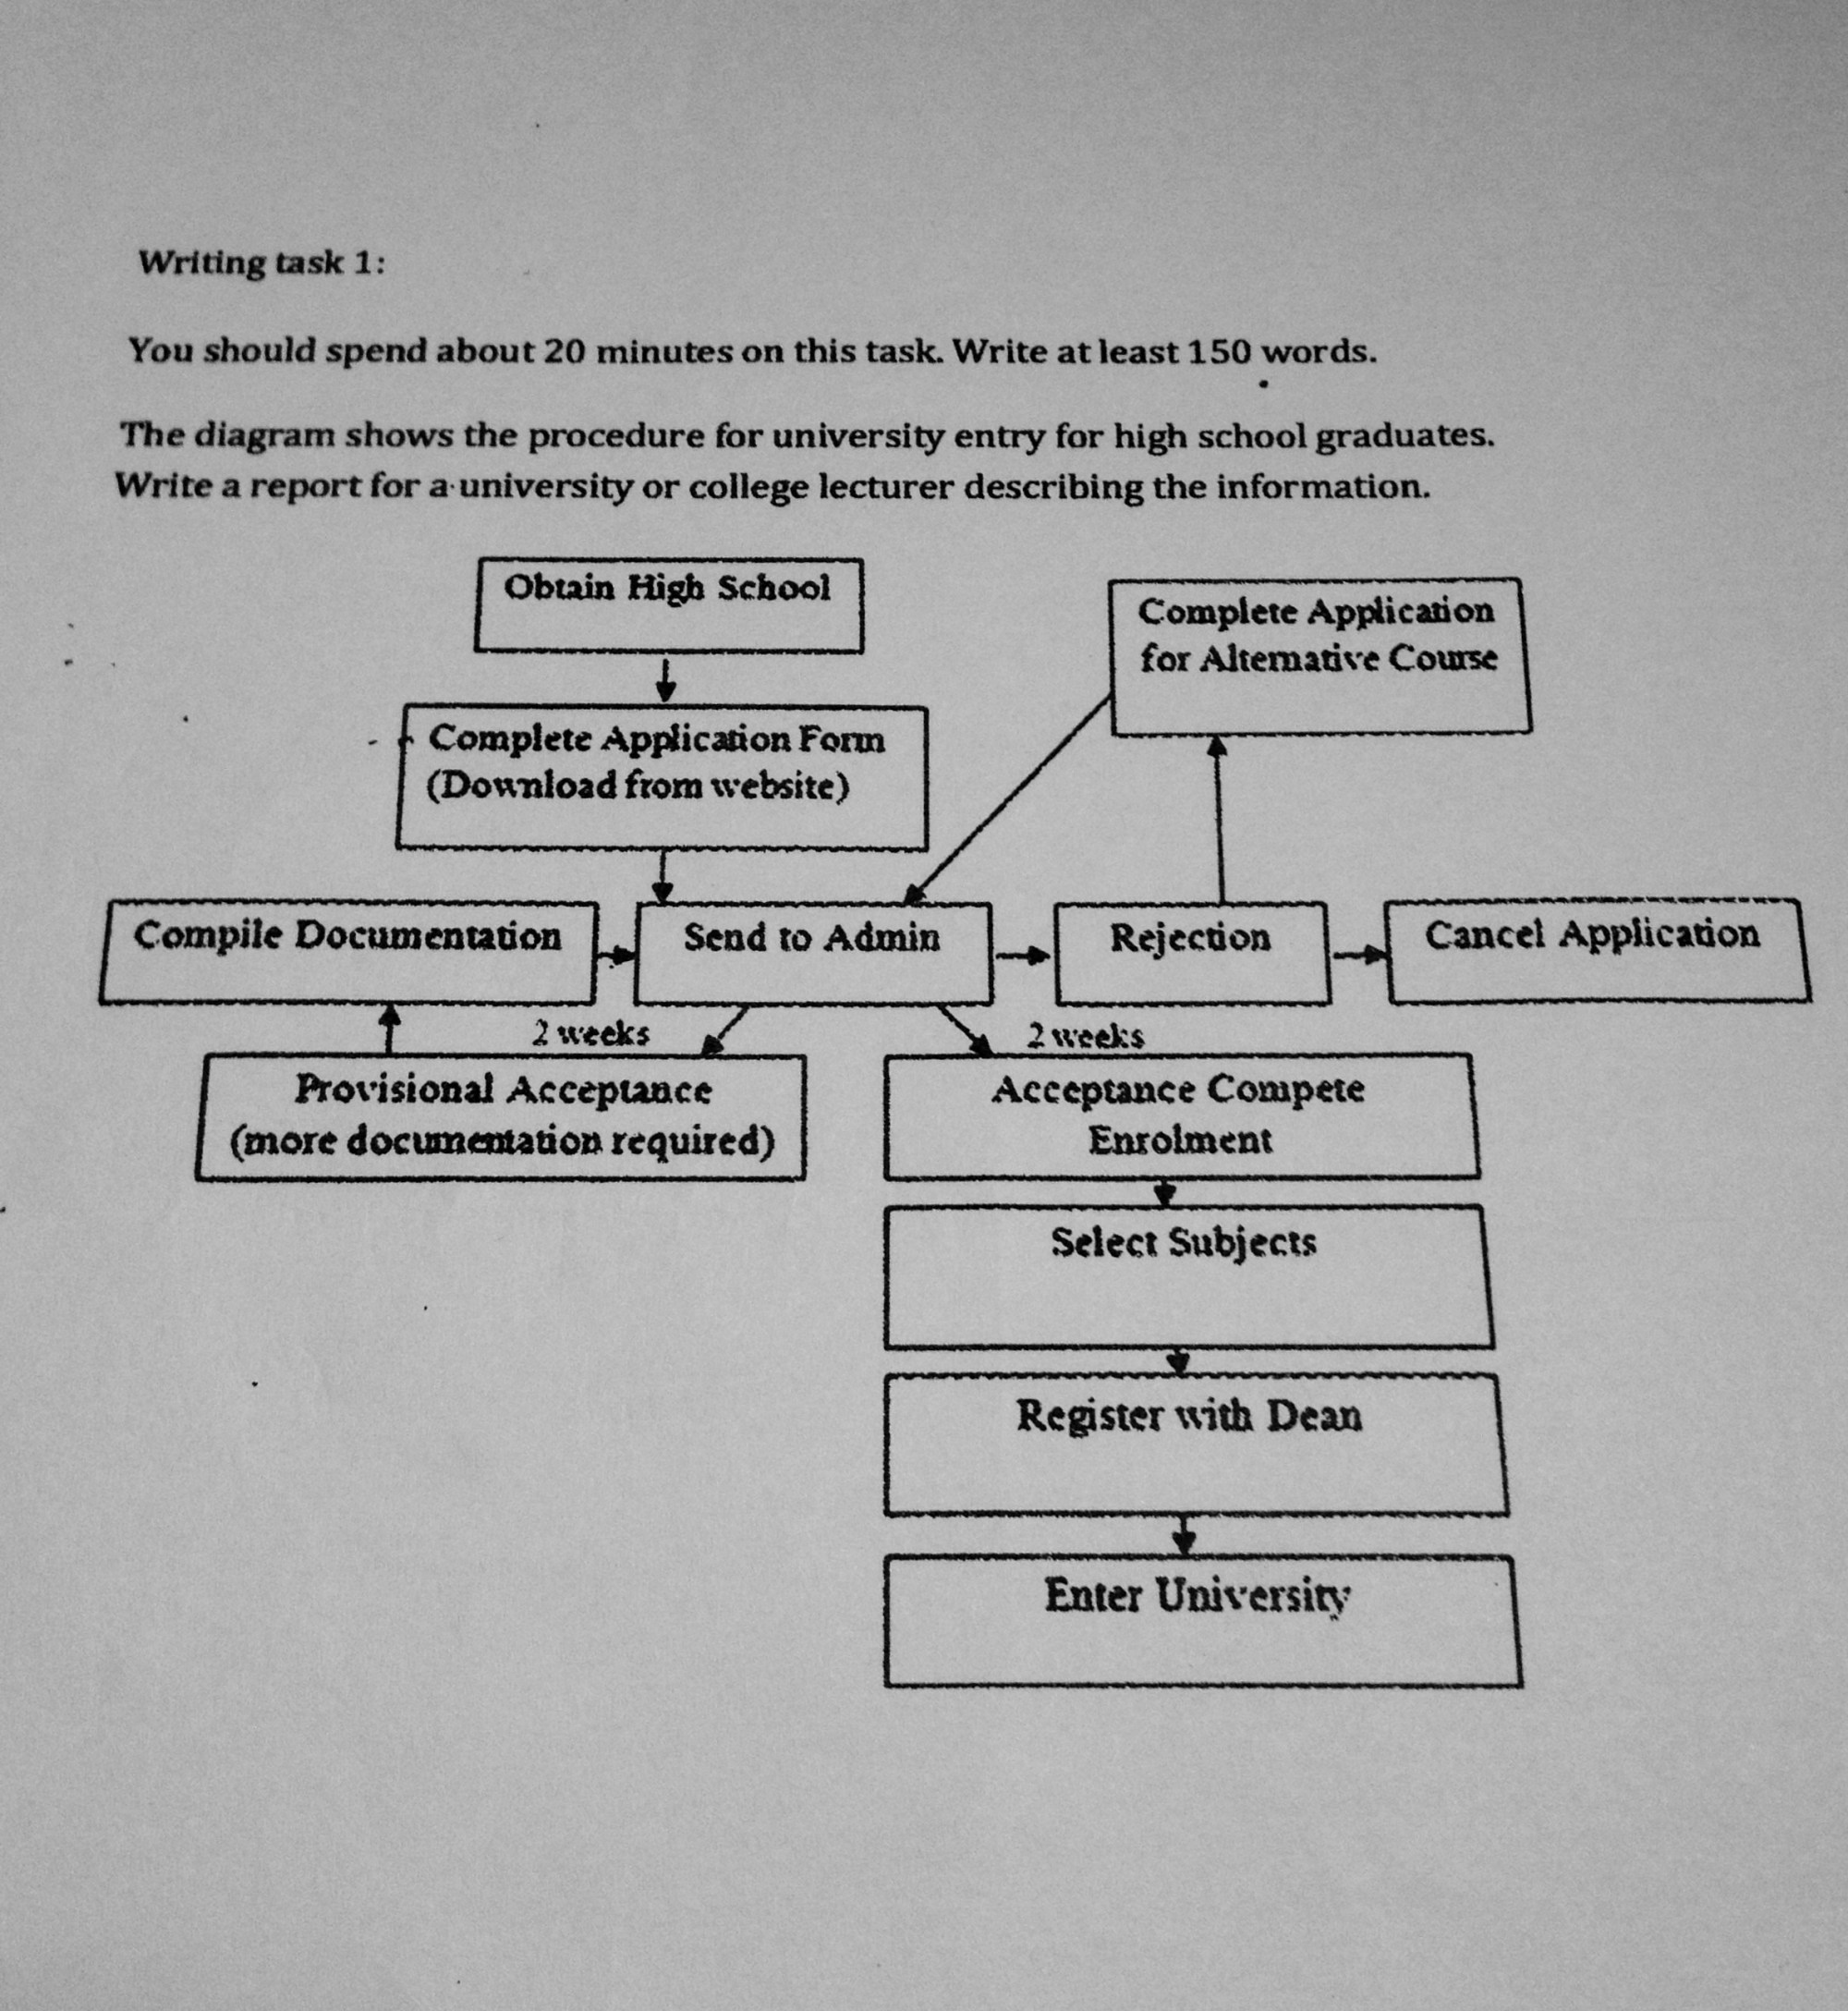 hight resolution of essay topics the diagram shows the procedure for the university entry for high school graduates write a report for a university or college lecturer